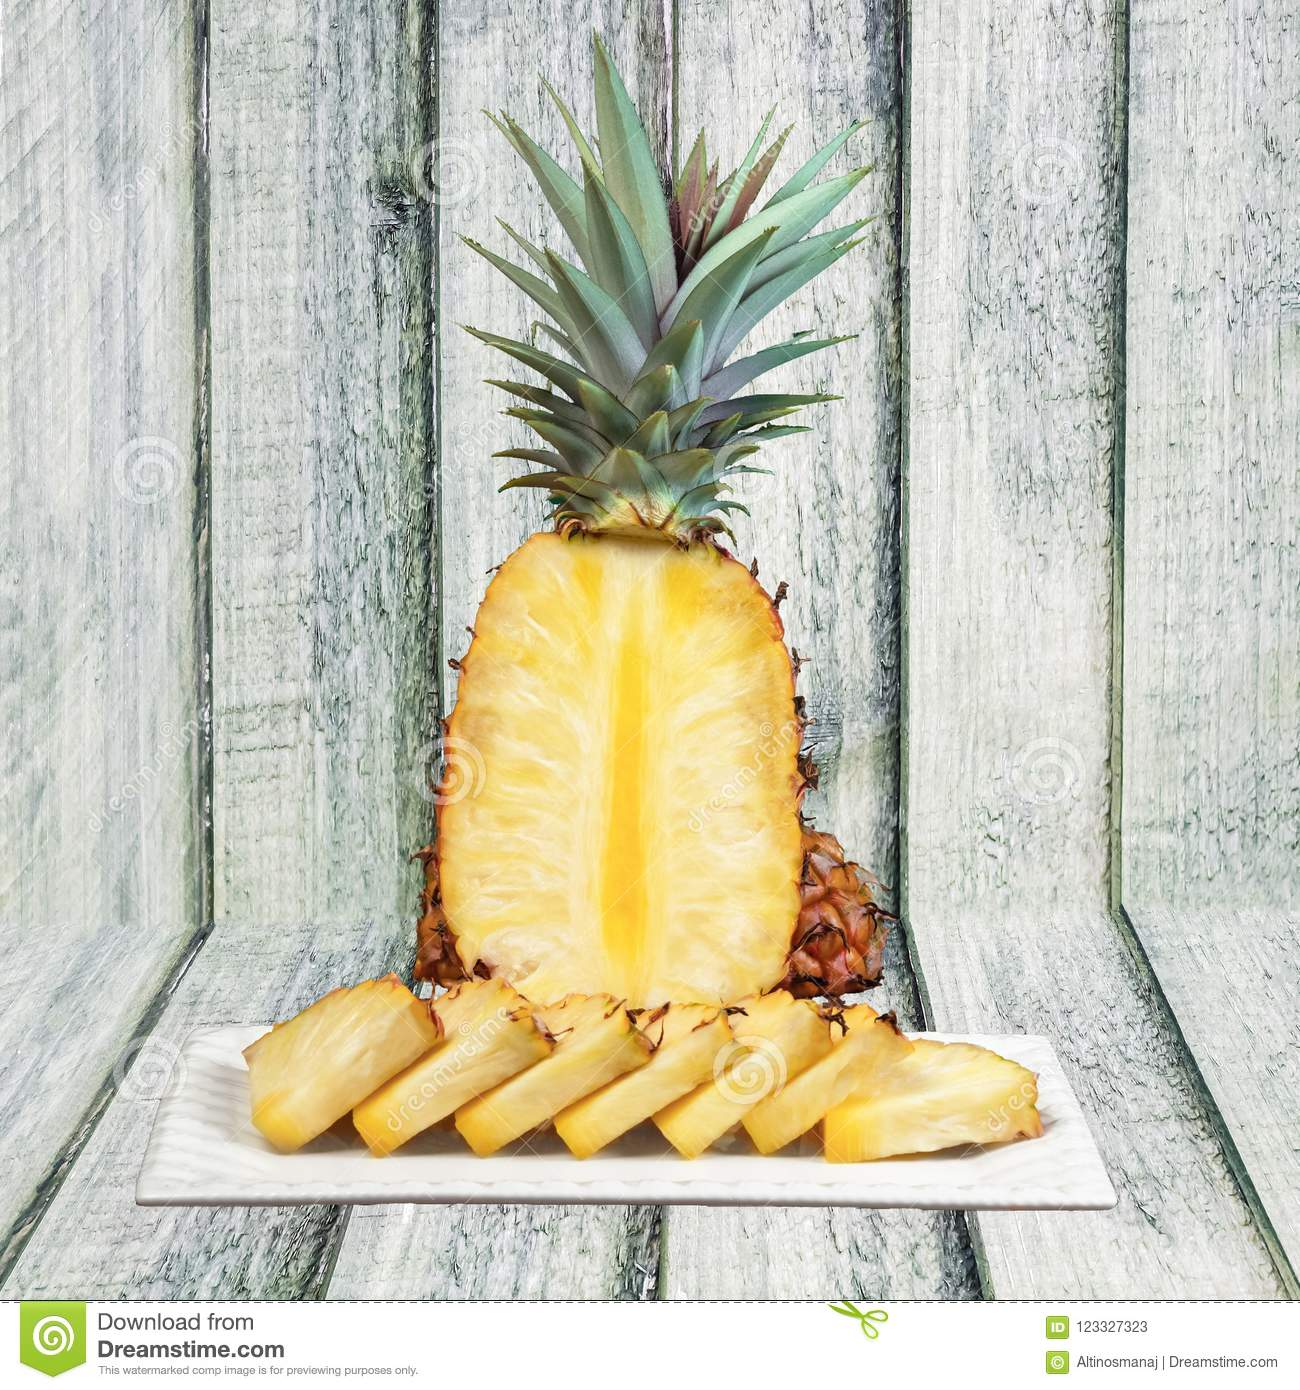 best way to cut pineapple wedges